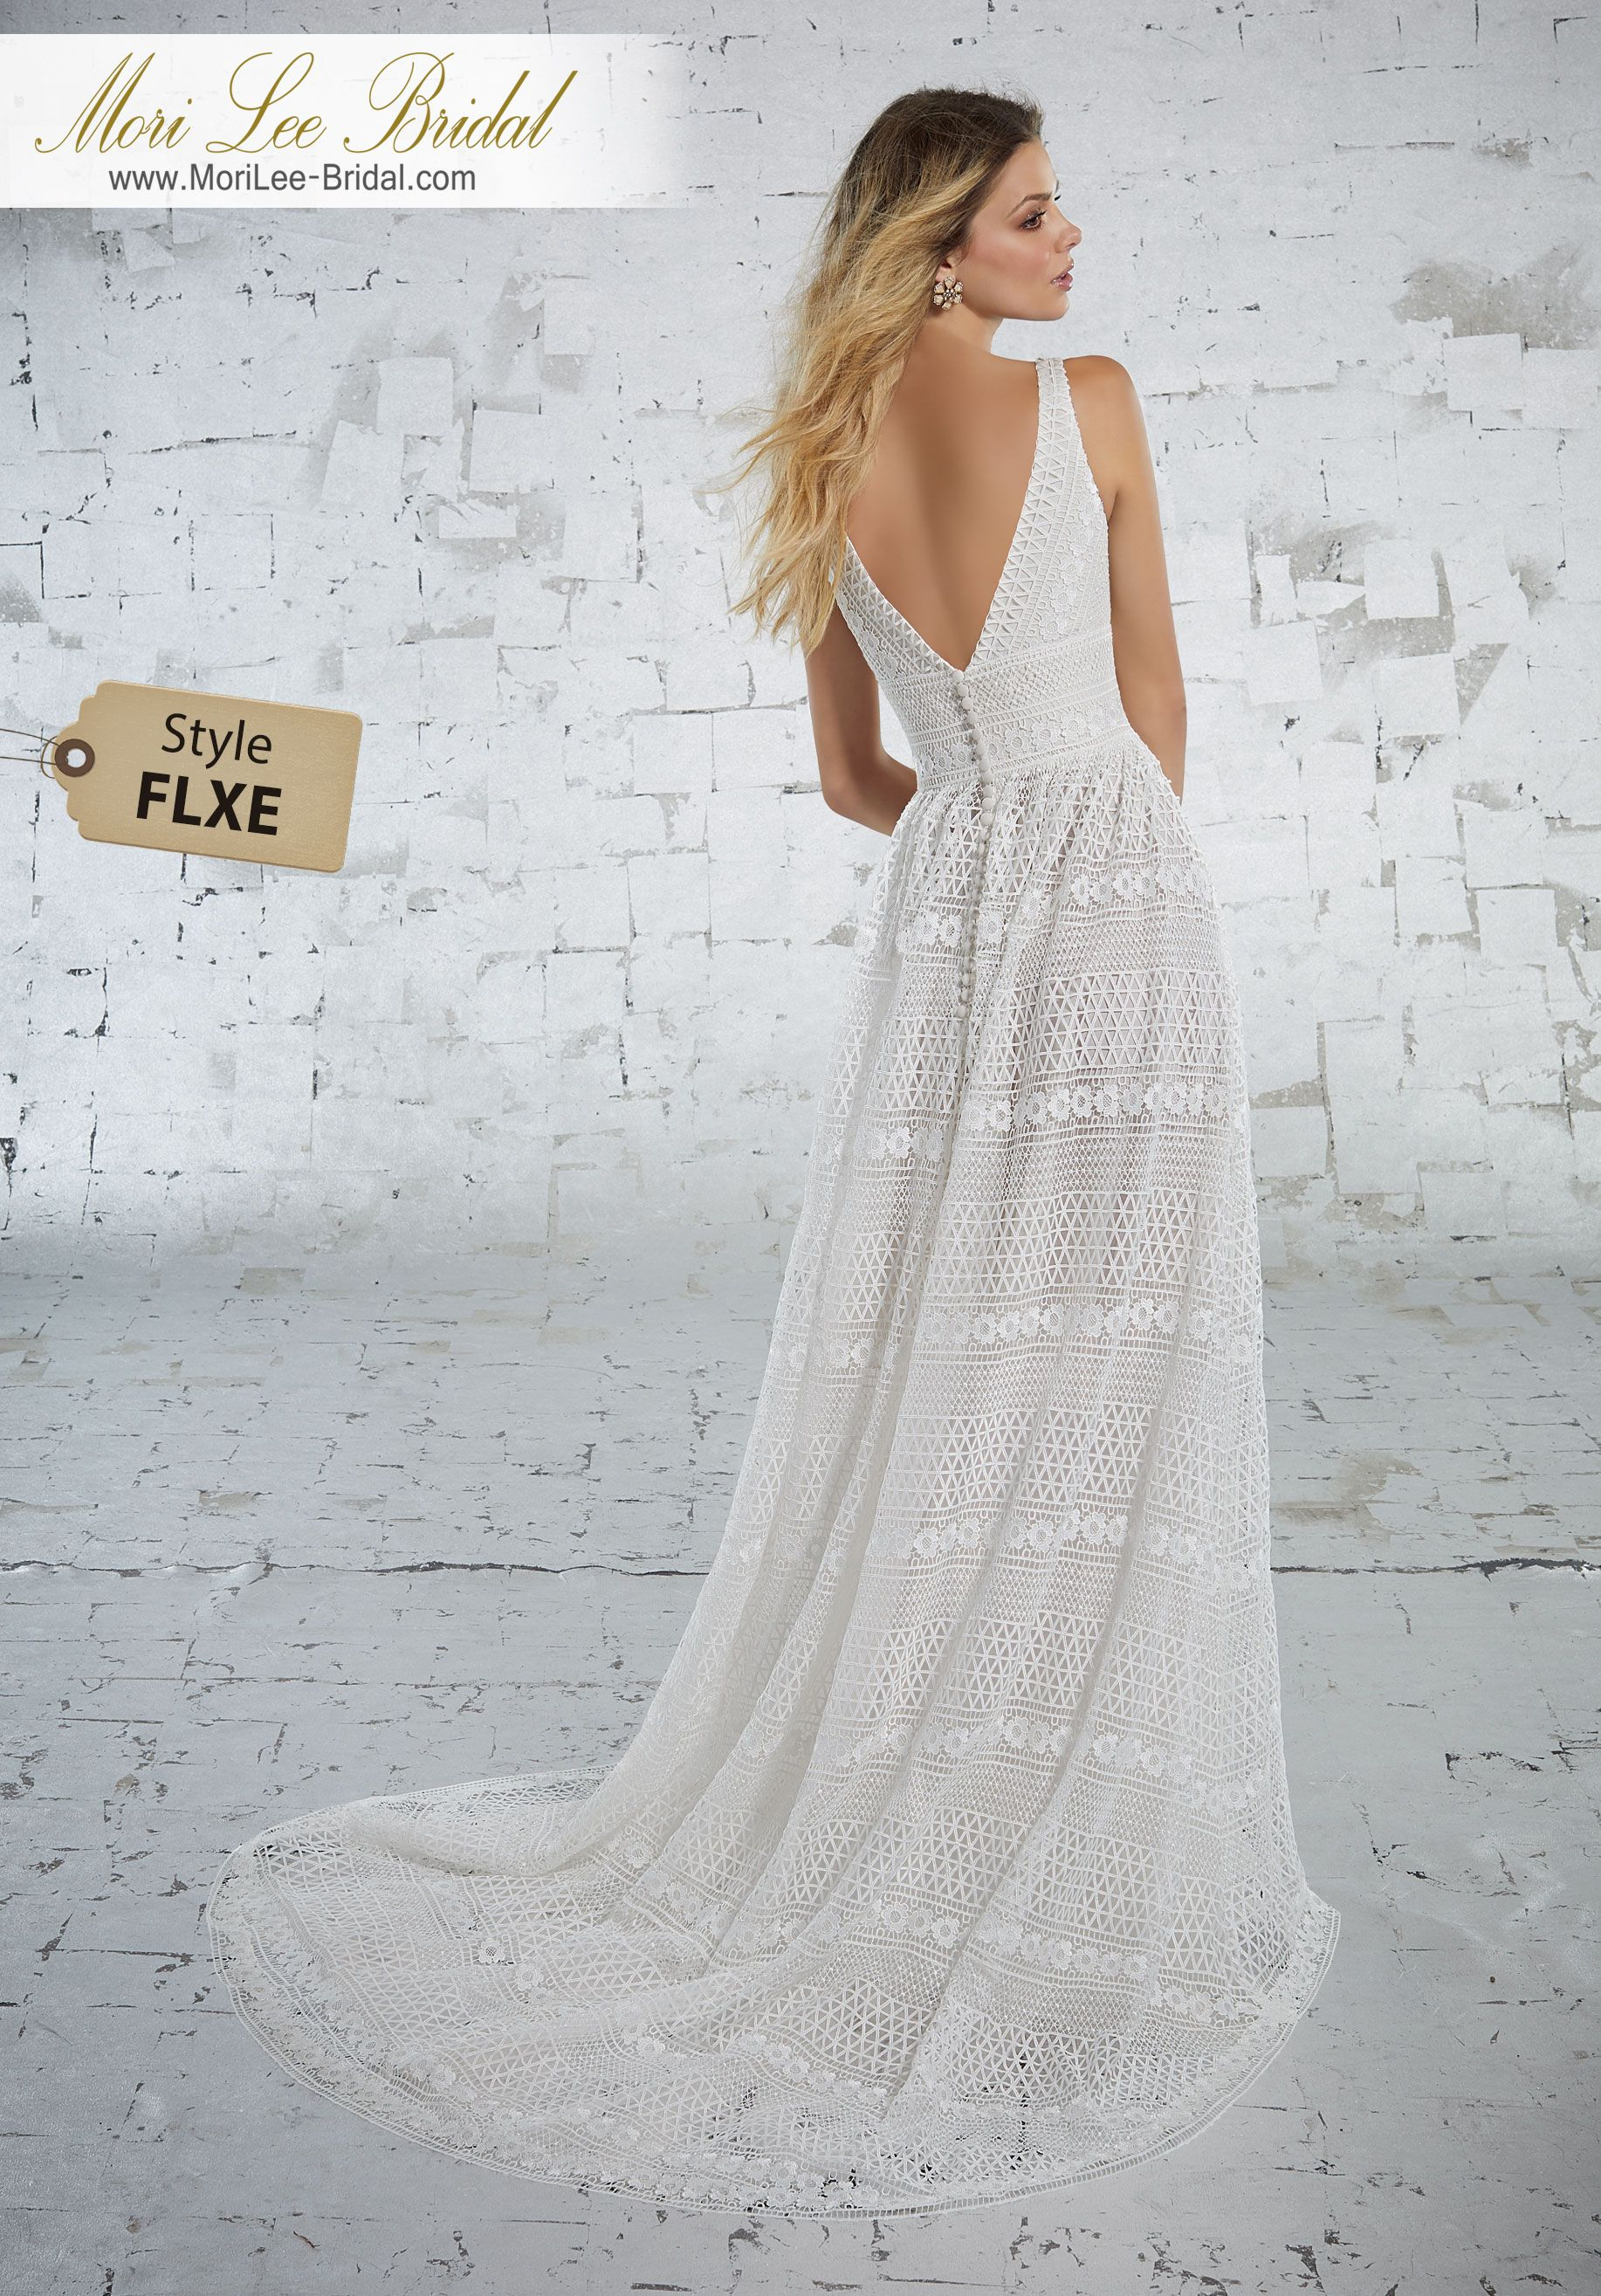 Style flxe katriane wedding dress soft and ethereal this french